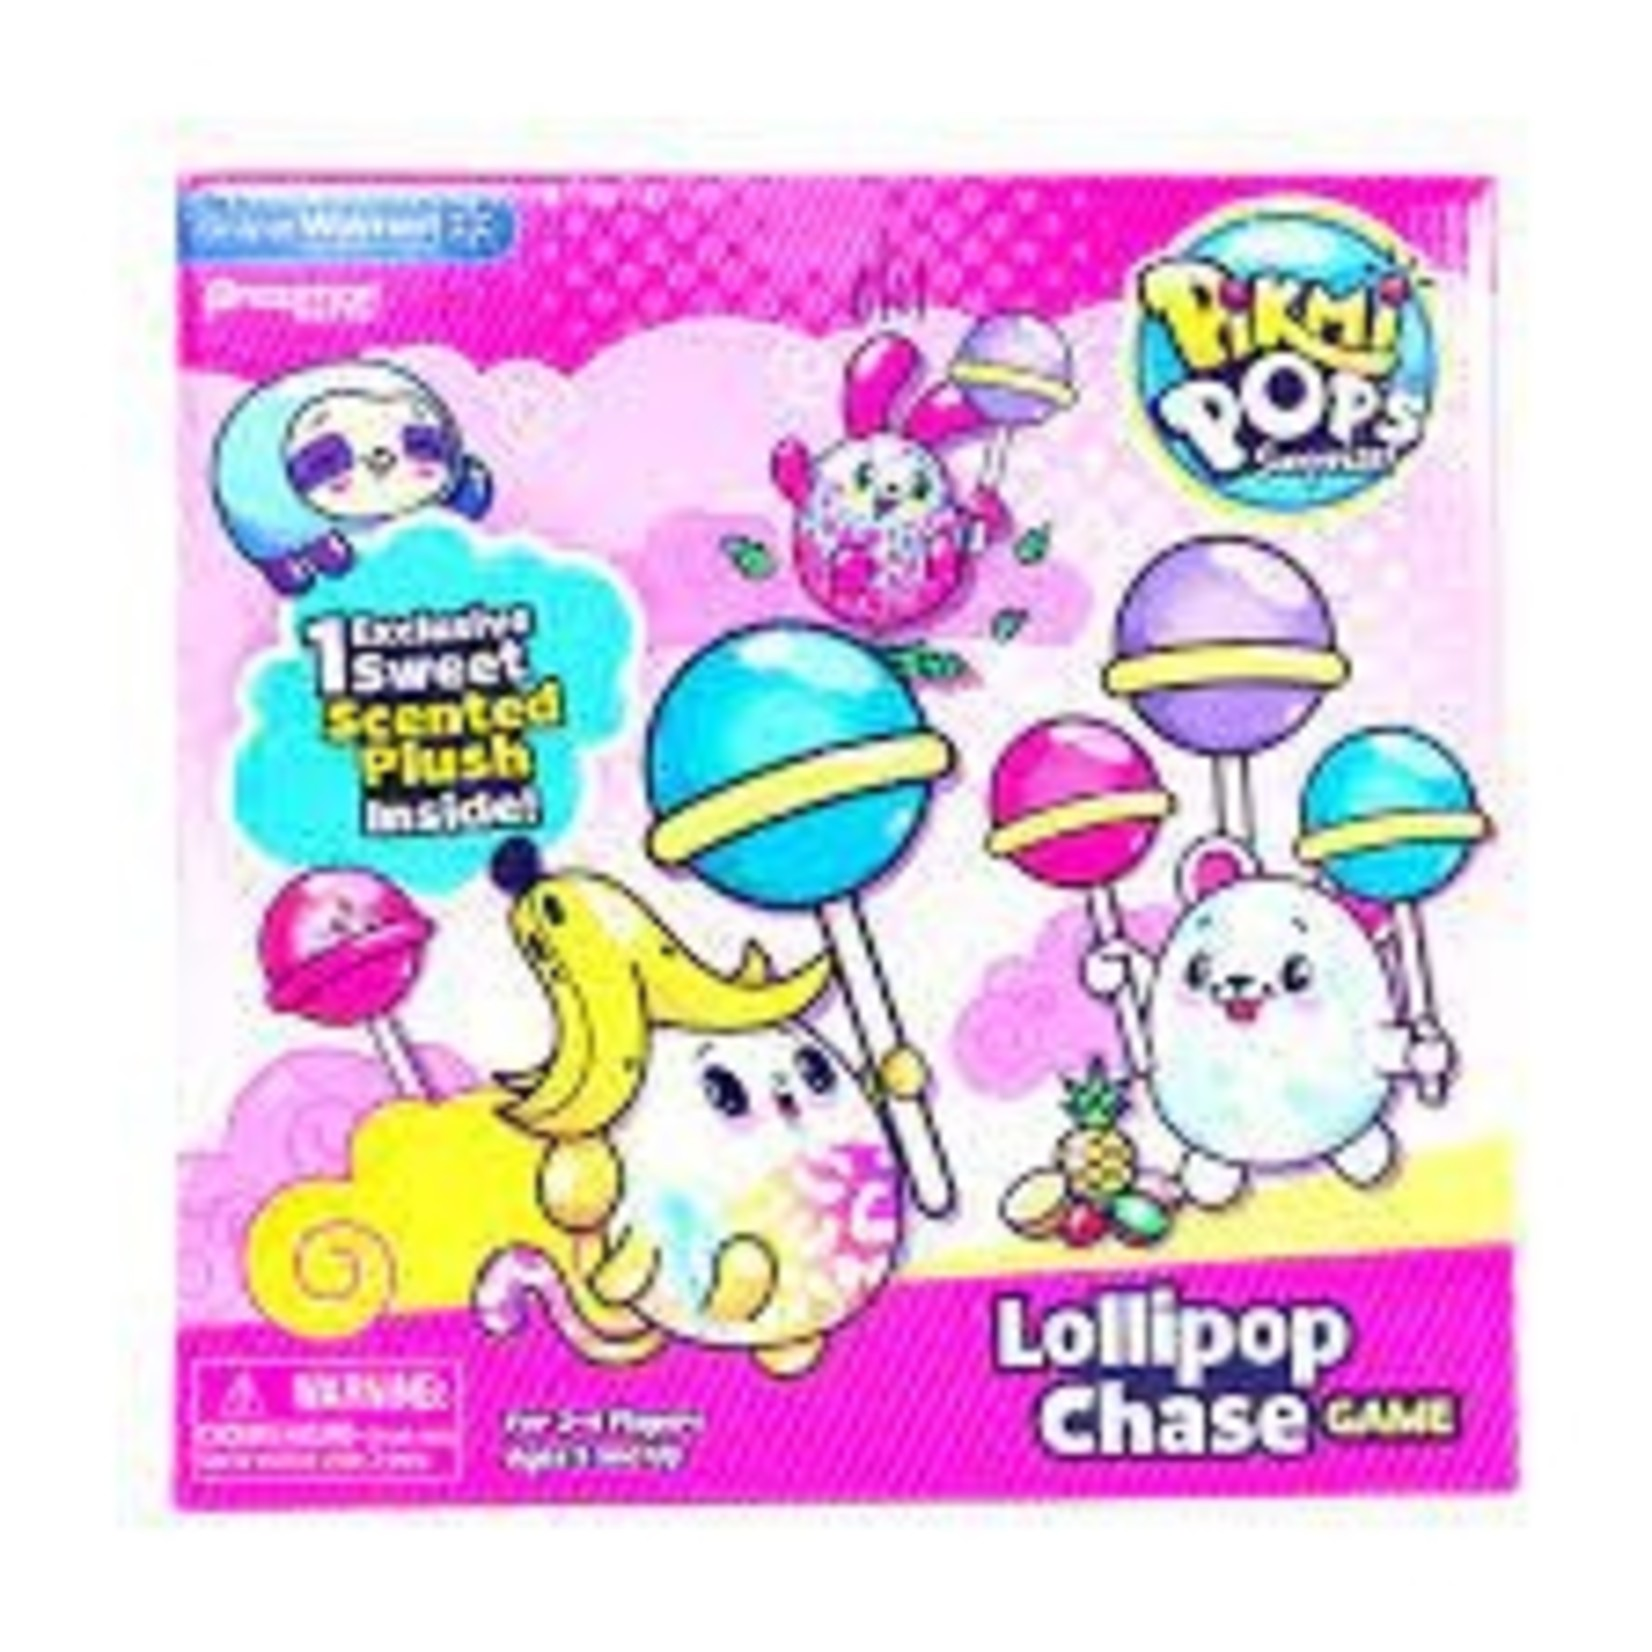 Lollipop Chase Game